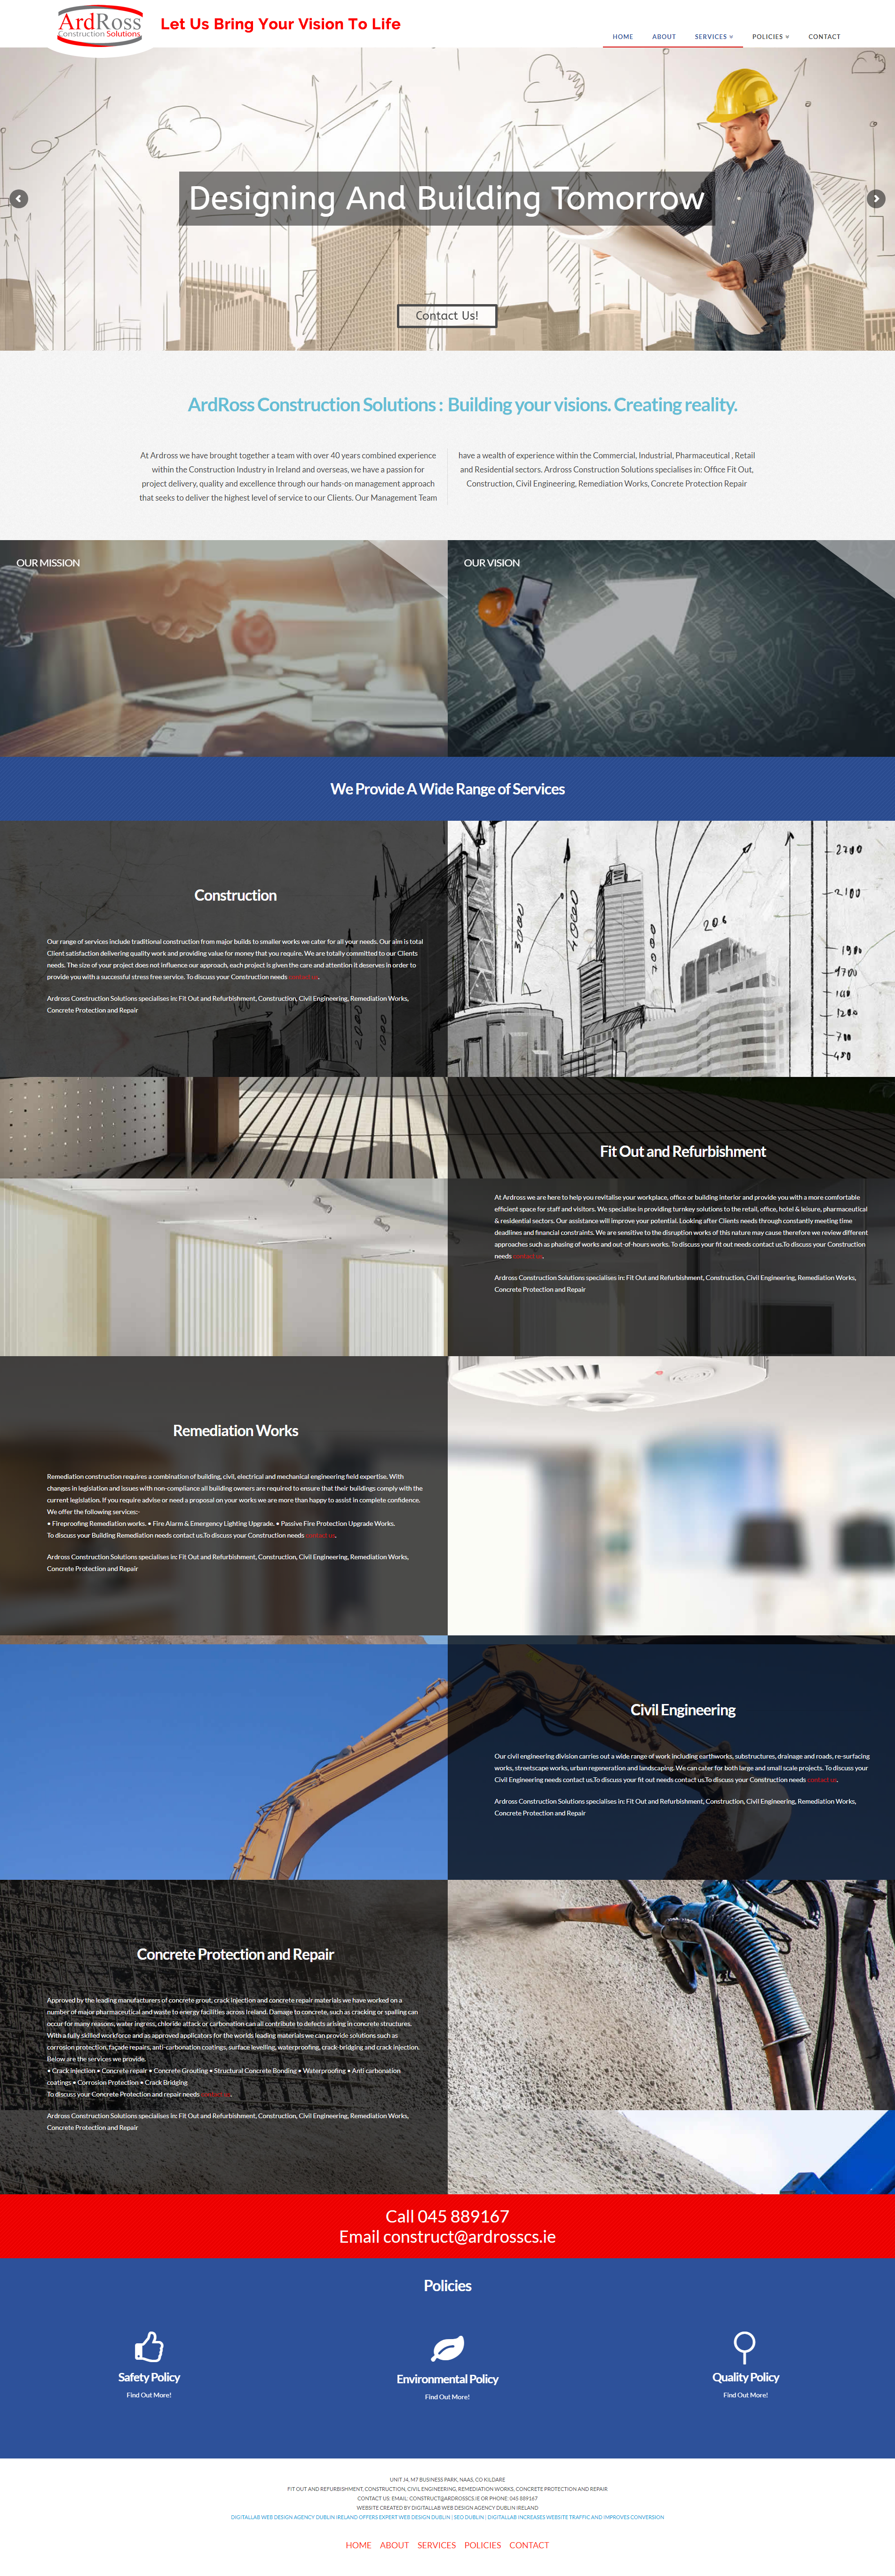 Ardross Construction Solutions bringing your vision to life website design and web development dublin and seo dublin by DigitalLab web design agency dublin